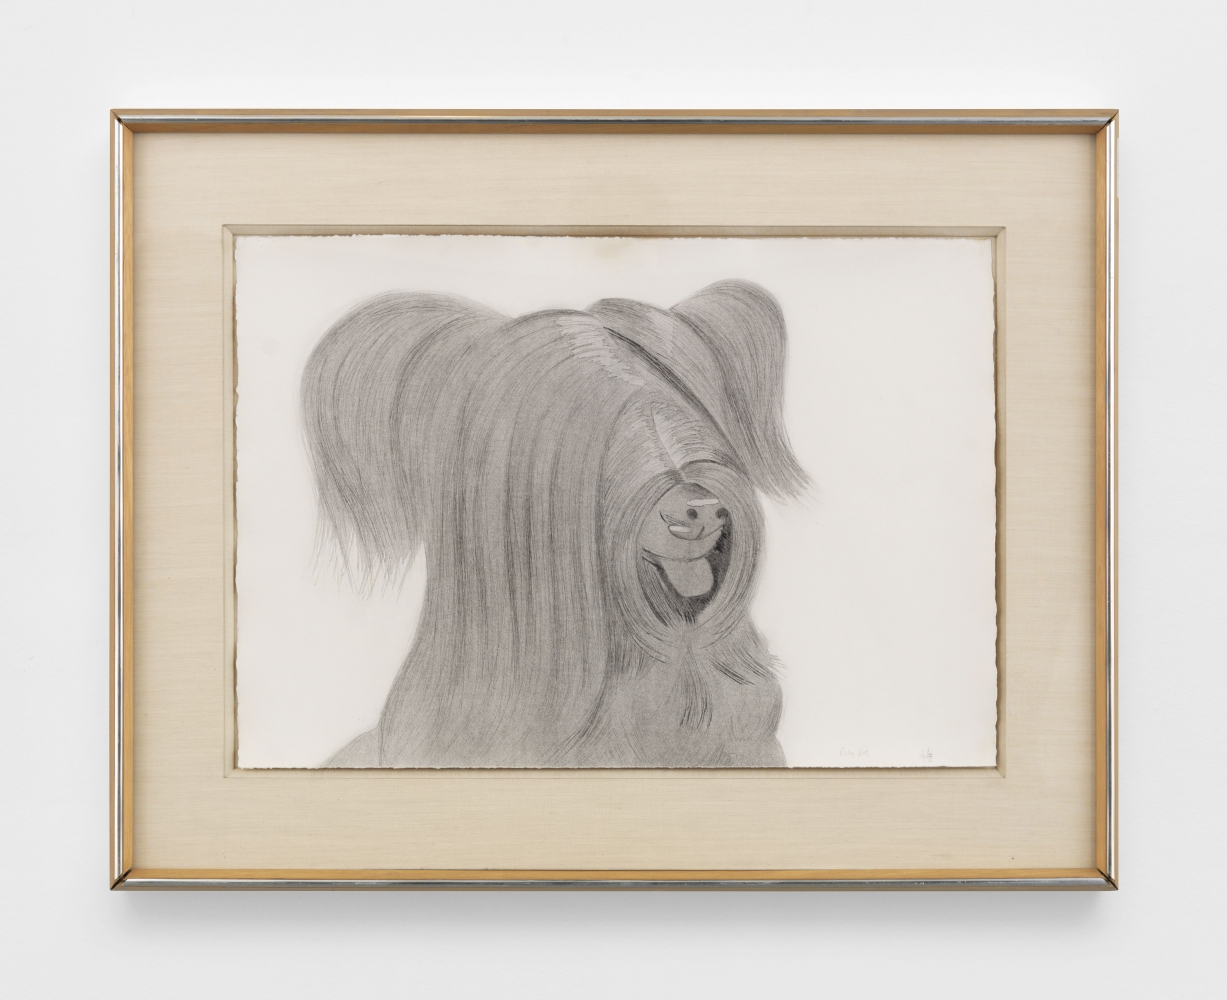 Framed aquatint/drypoint drawing of a dog with shaggy long hair covering its eyes and featuring its tongue sticking out